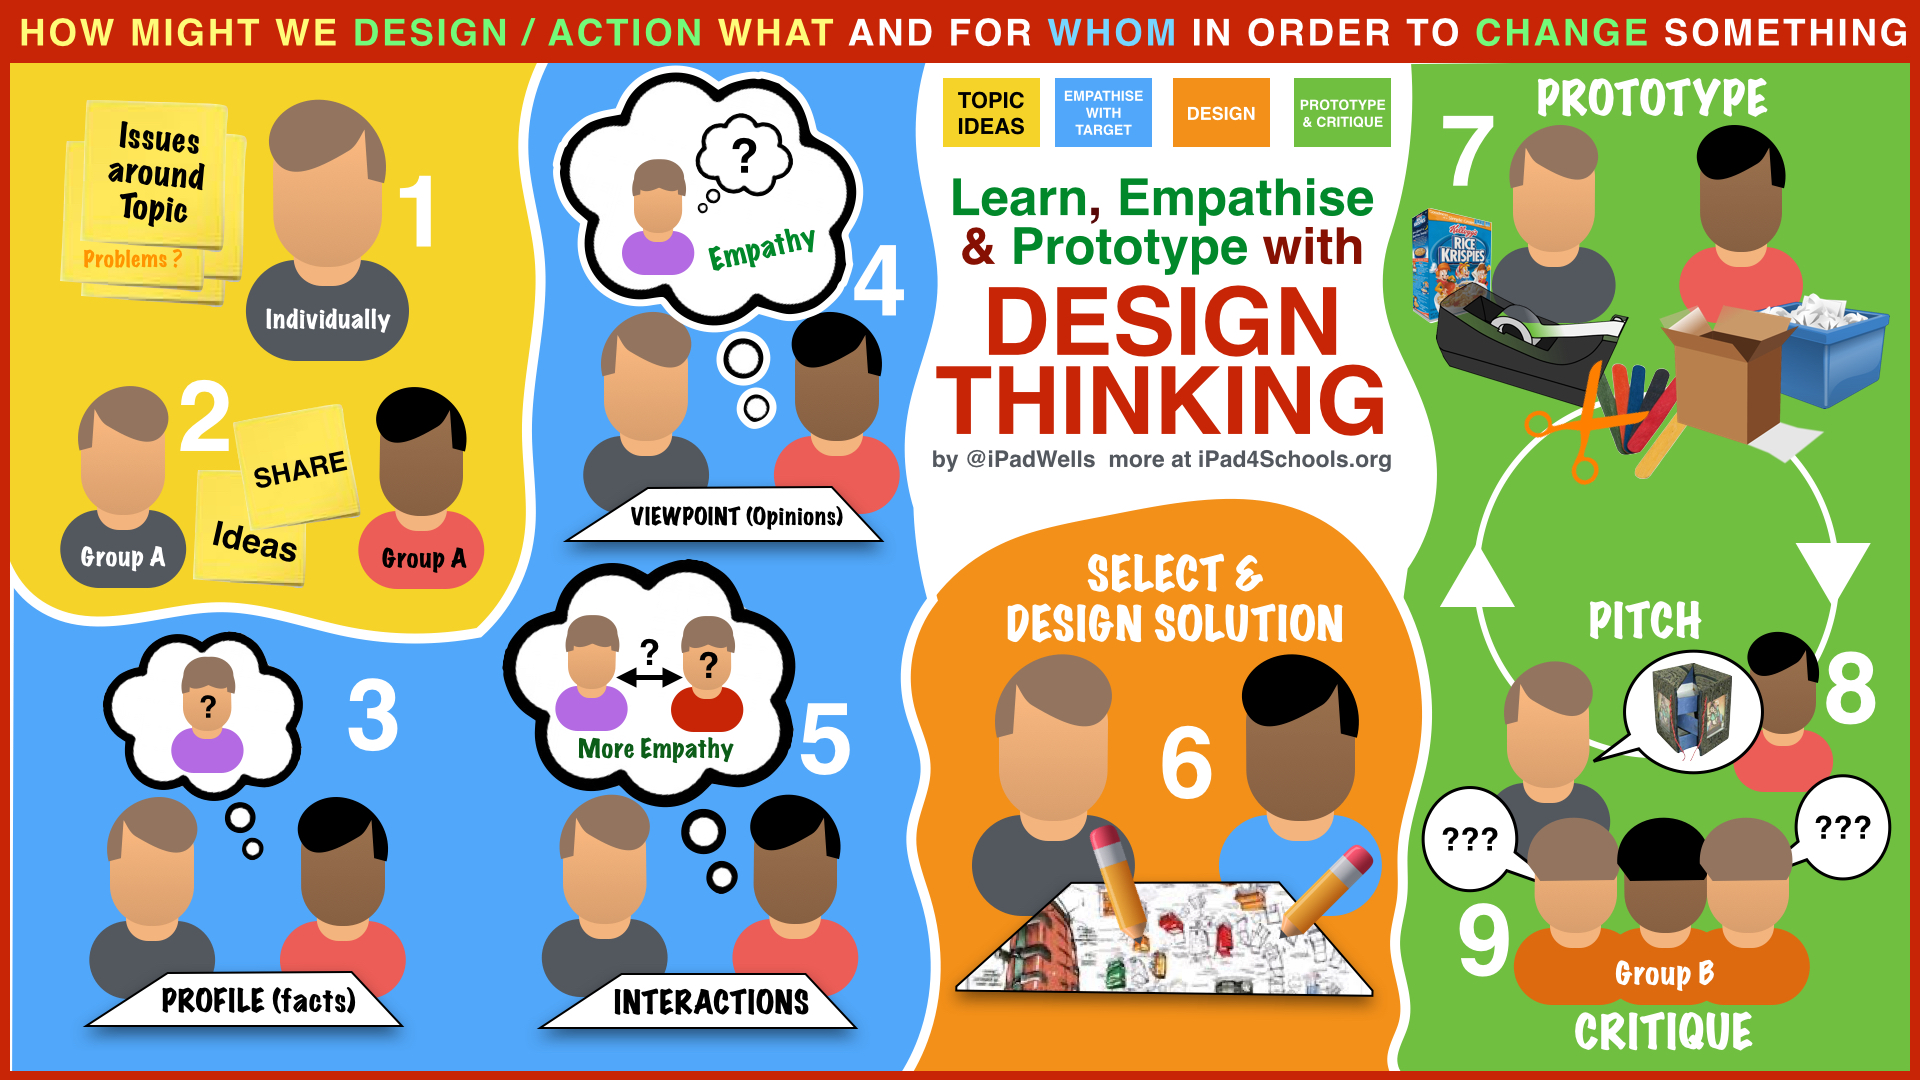 https://eduwells.files.wordpress.com/2015/01/design-thinking-ipadwells1.jpg